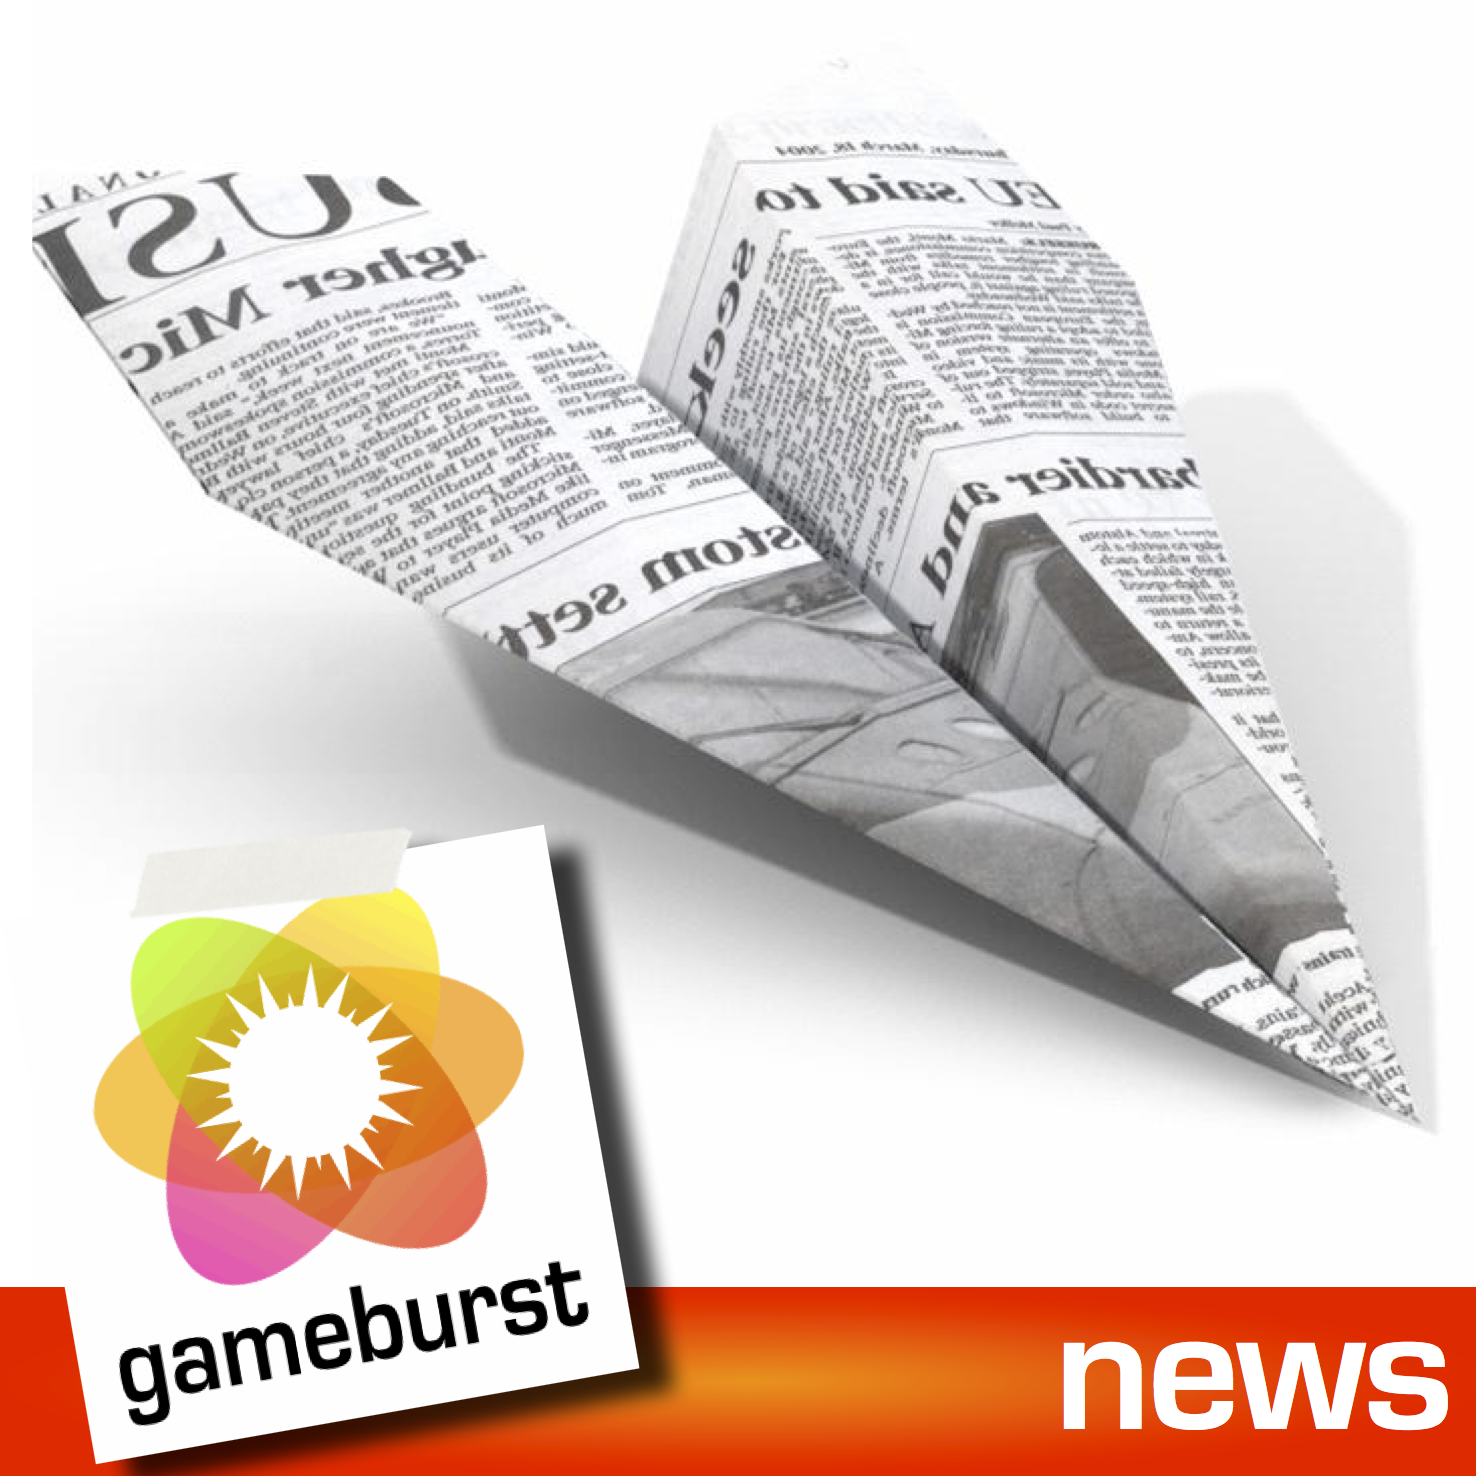 GameBurst News - November 4th 2012